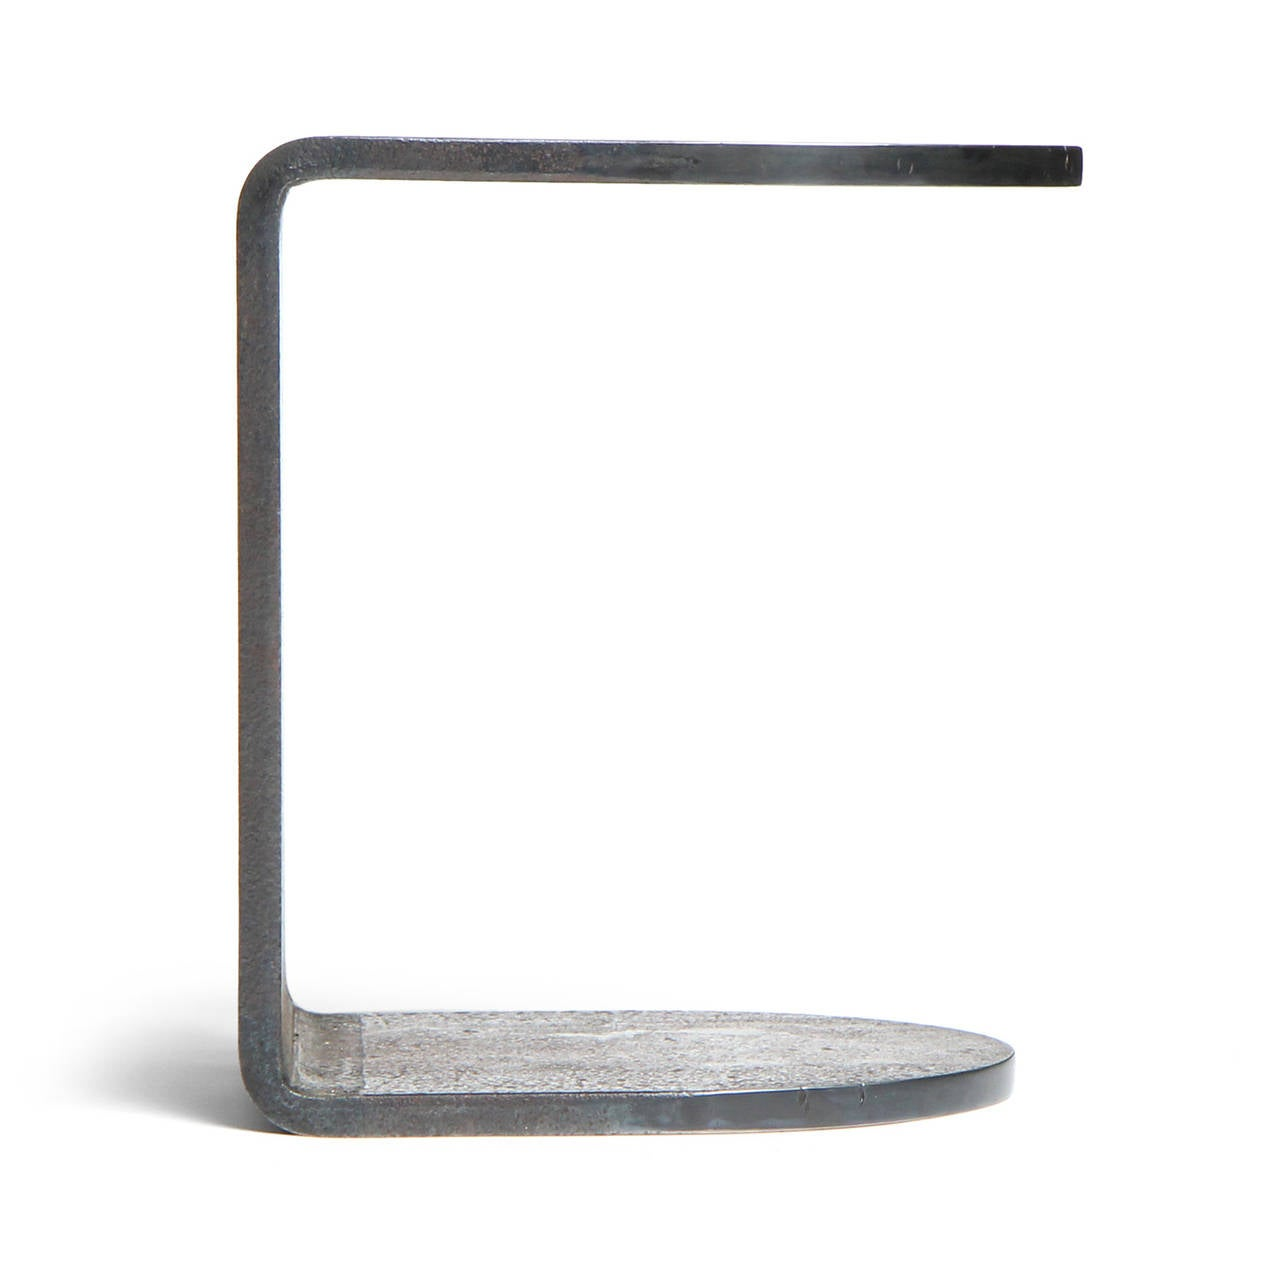 A superbly spare and substantial side table, impeccably handcrafted from beautifully patinated natural steel.